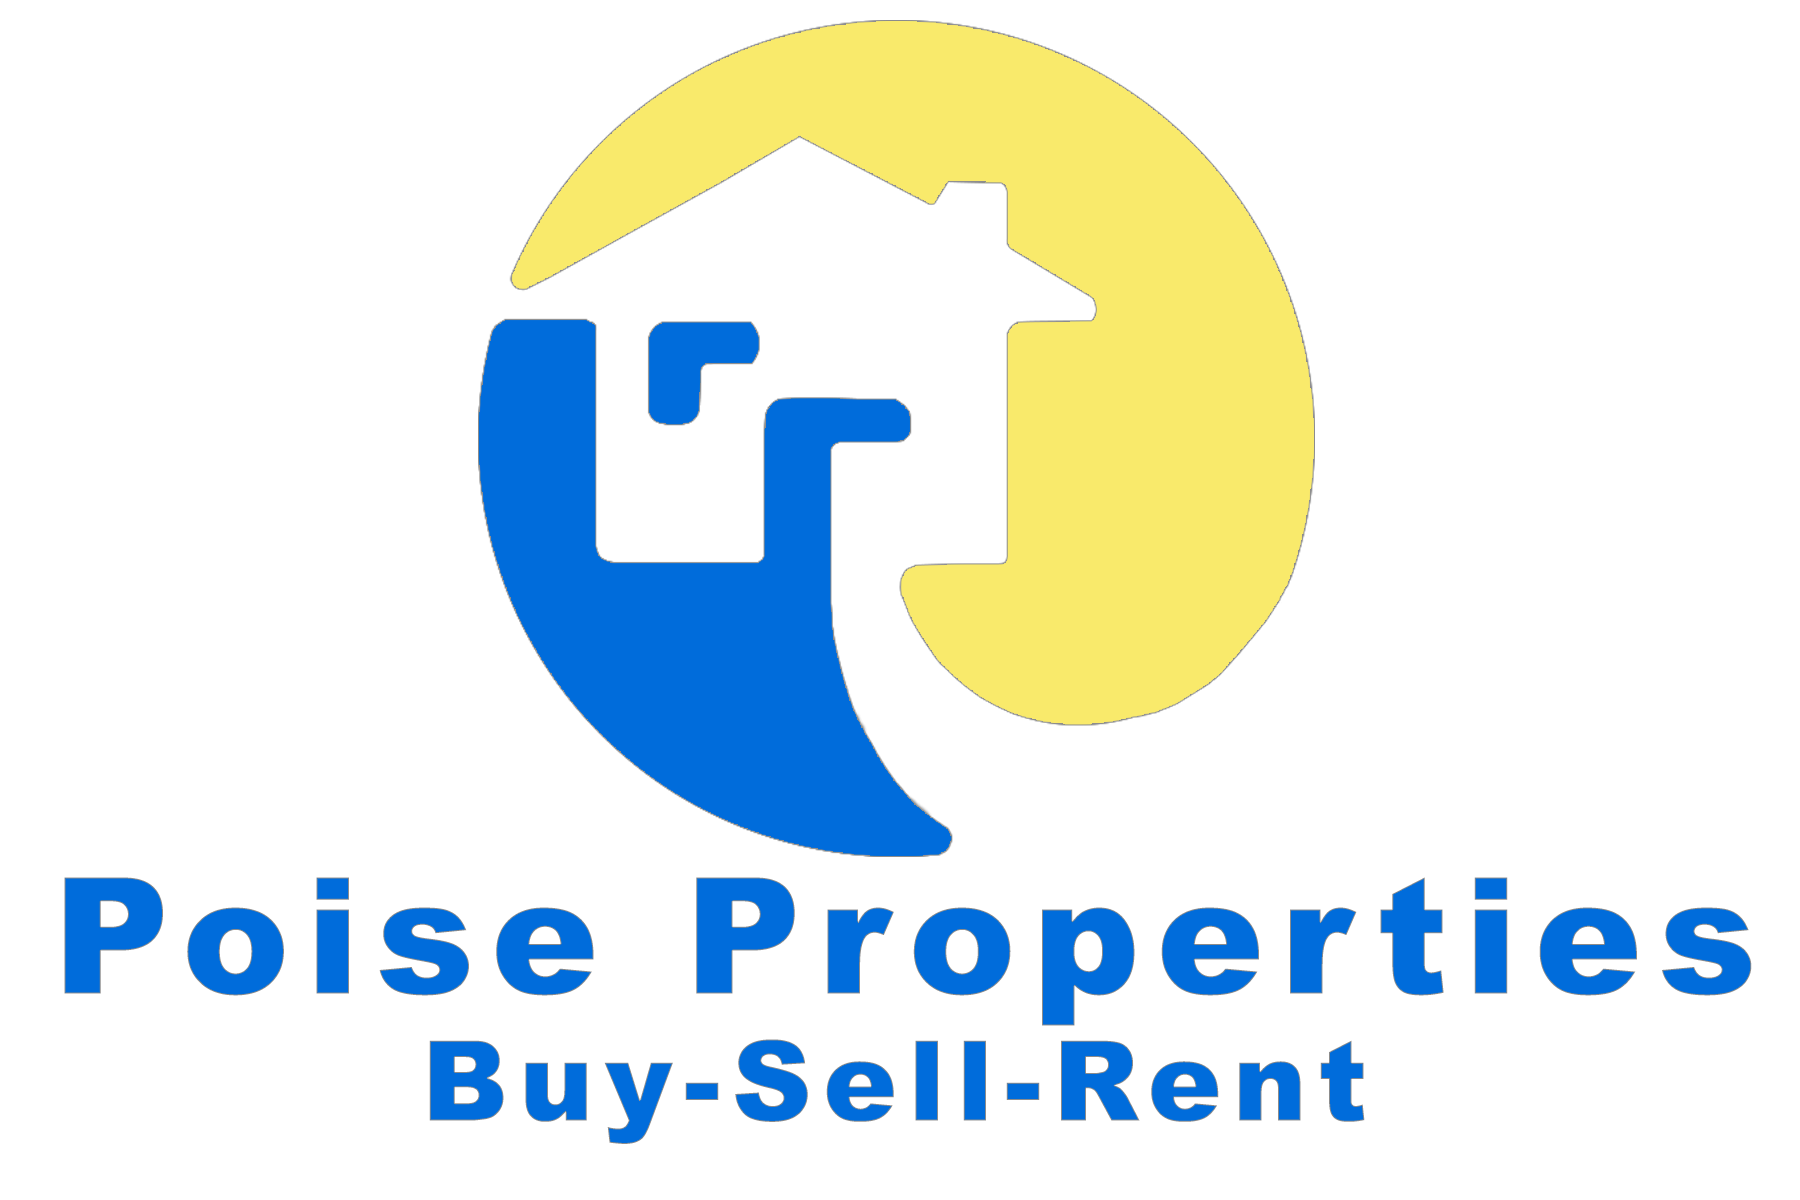 POISE PROPERTIES